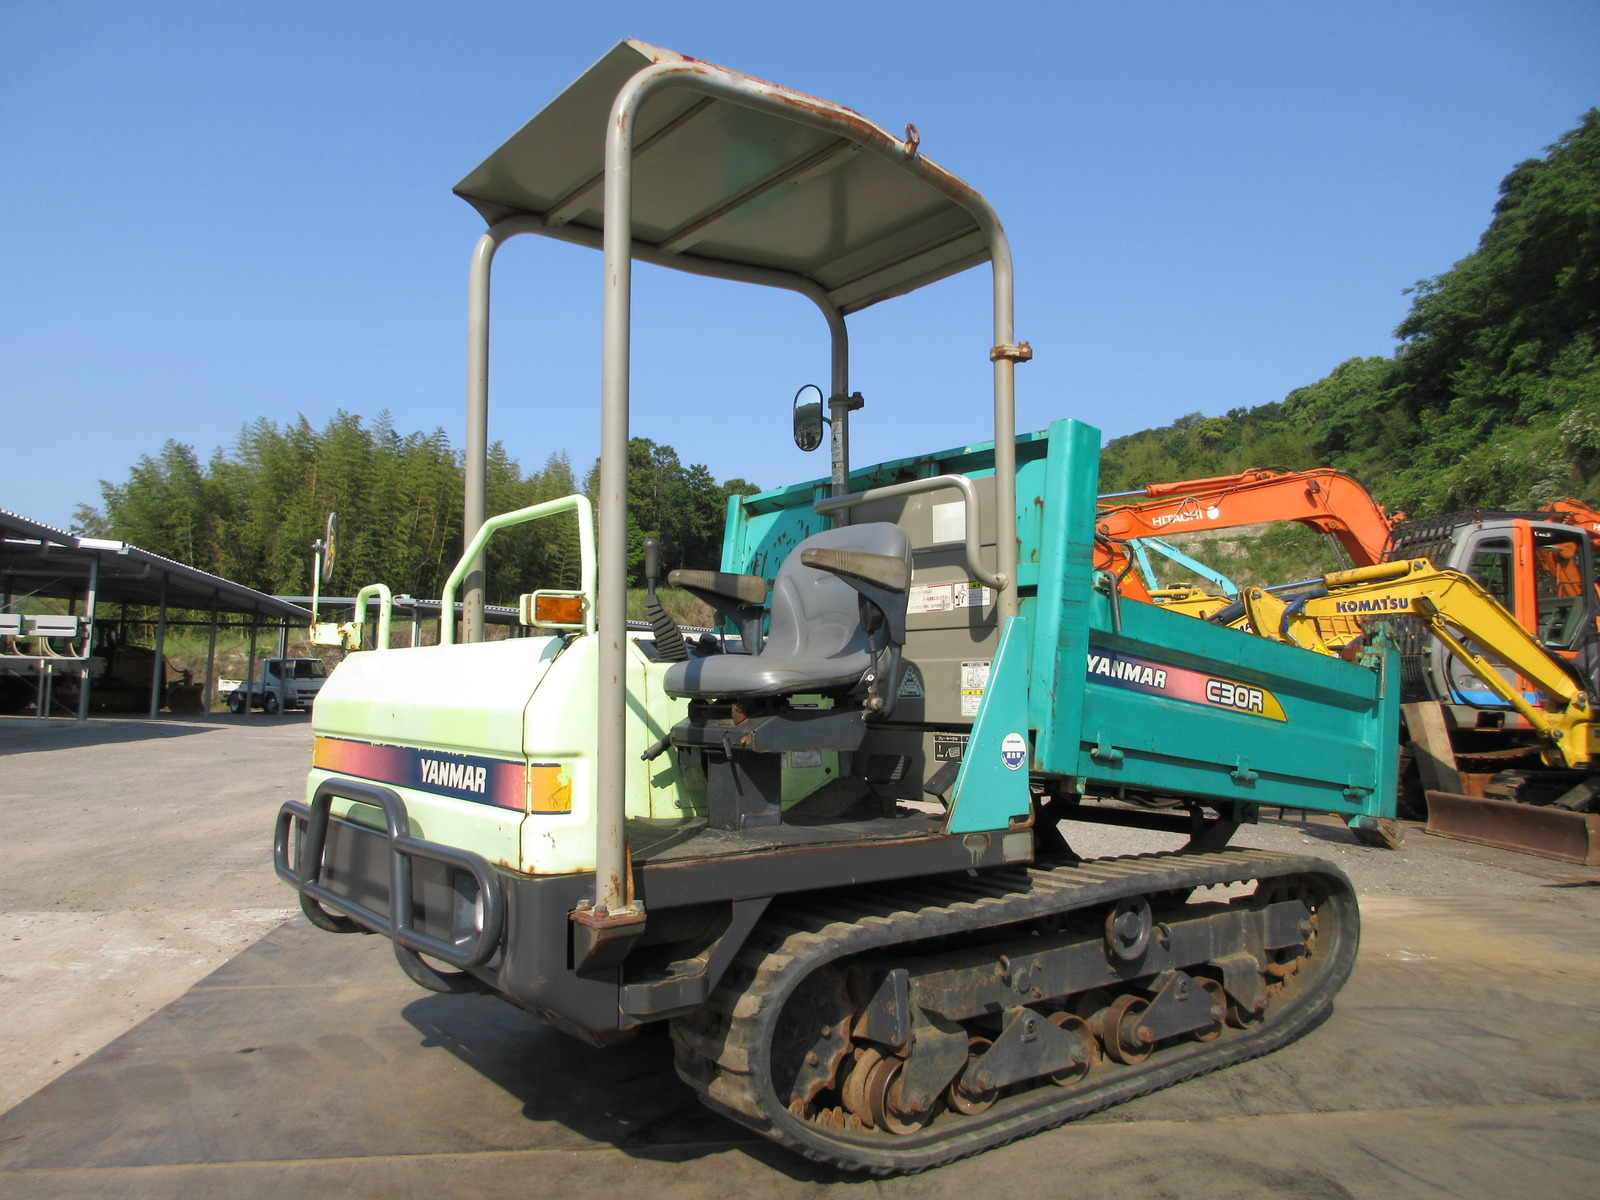 Used Construction Machine used  YANMAR C30R-2 Photos